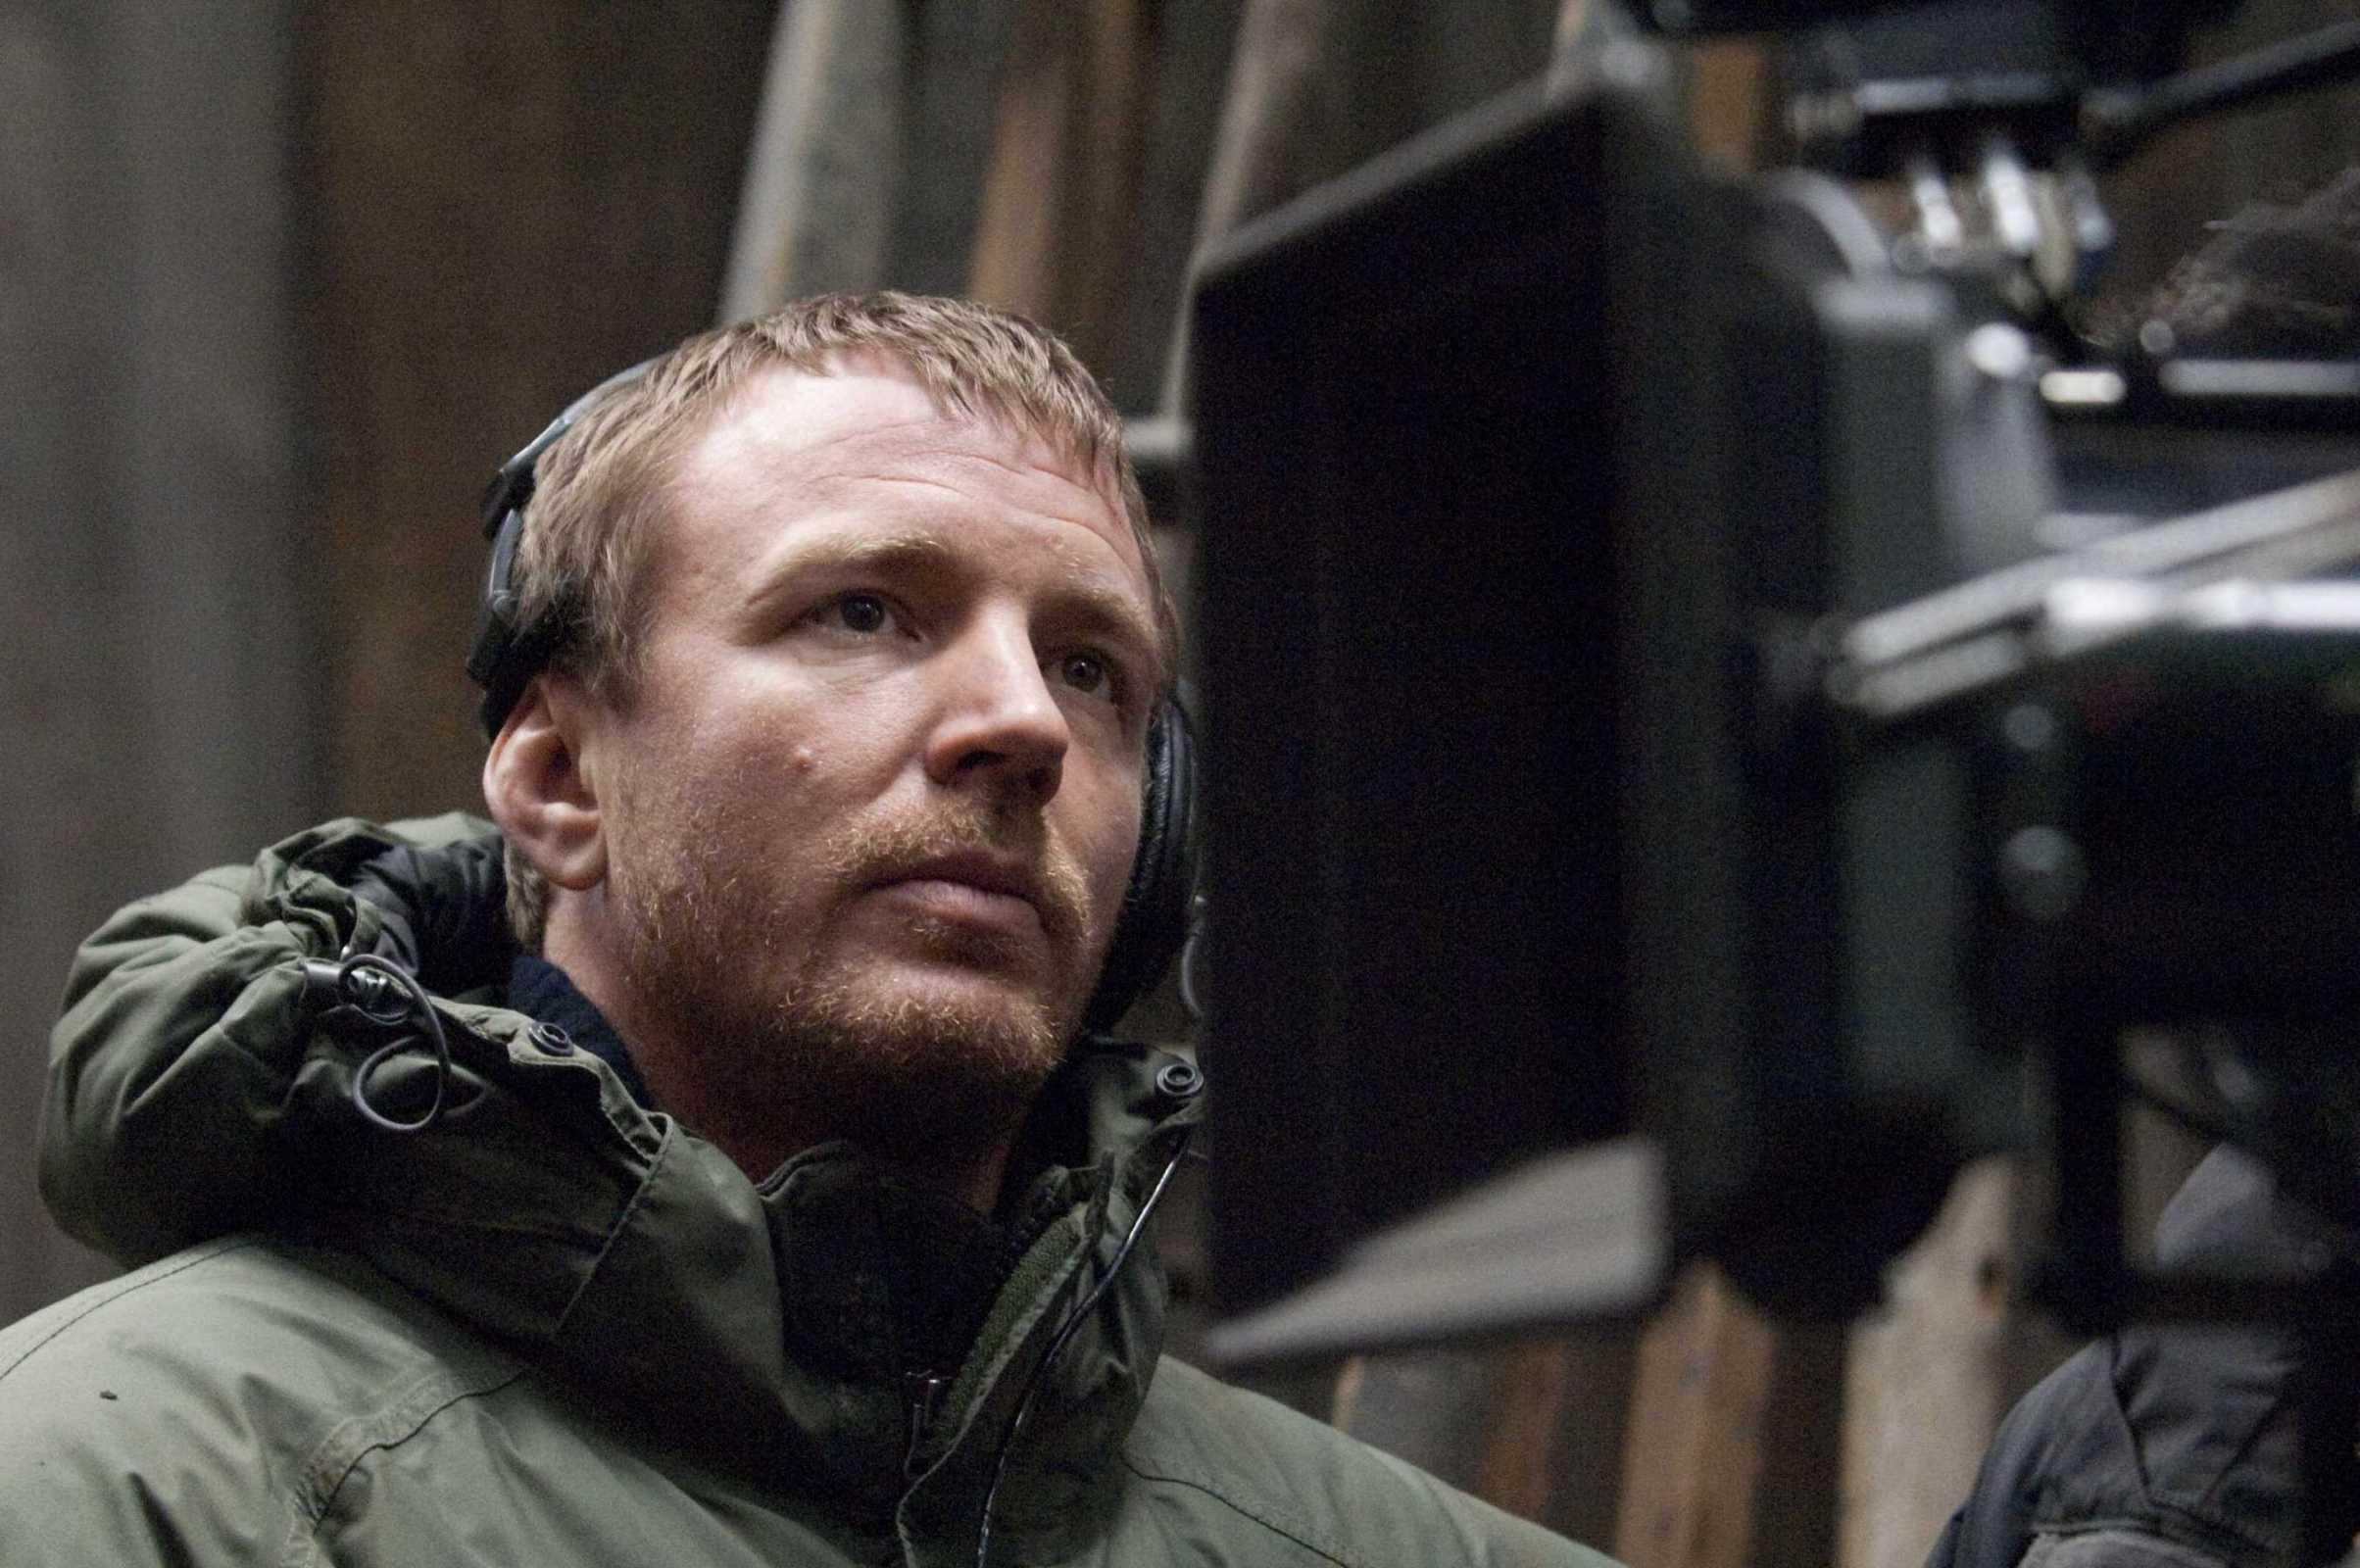 http://thefilmstage.com/wp-content/uploads/2011/12/guy-ritchie-01.jpg